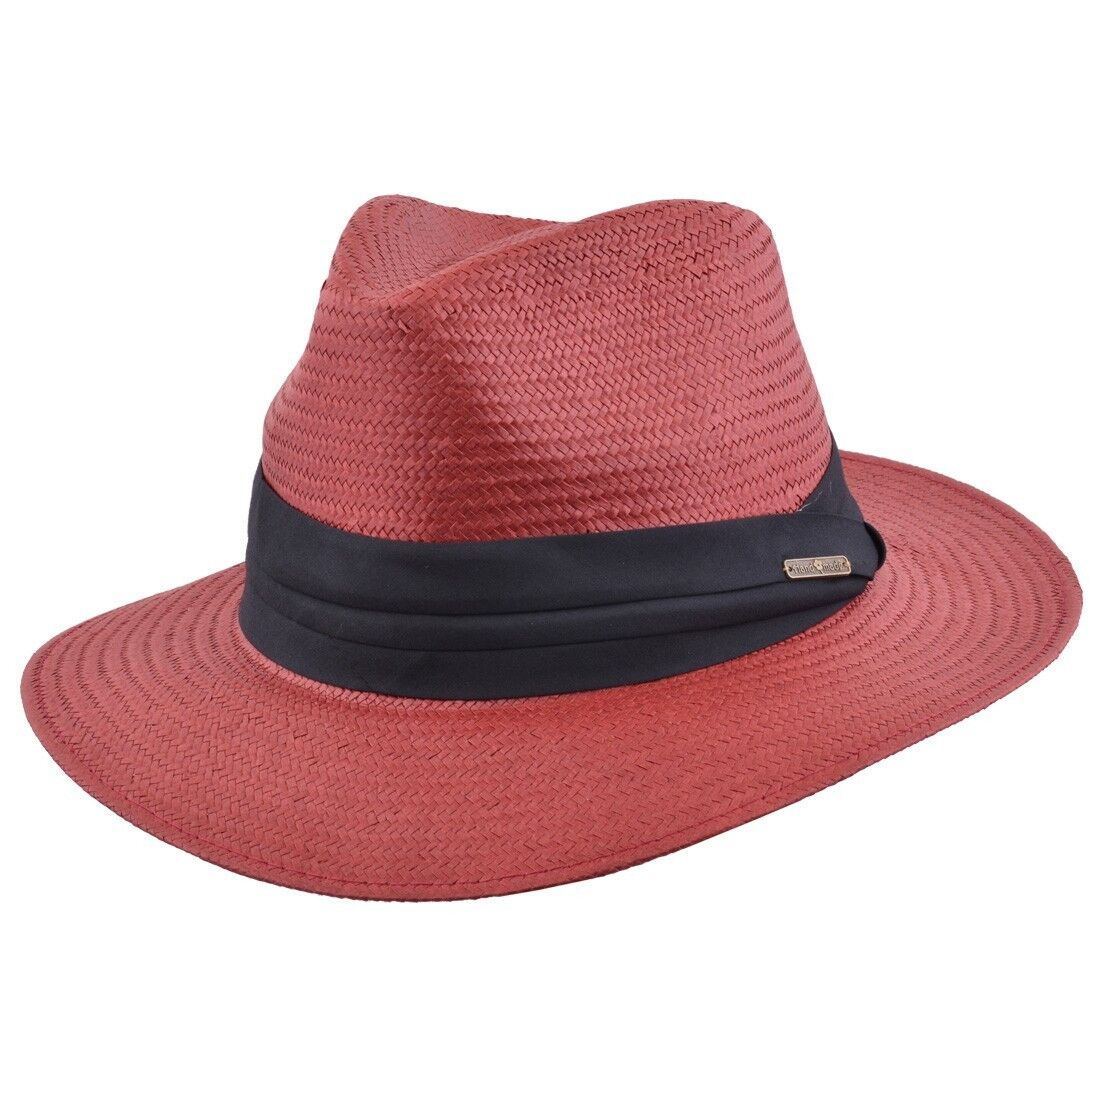 Mens Ladies Brick Packable Straw Summer Panama  Fedora  Hat With Band New